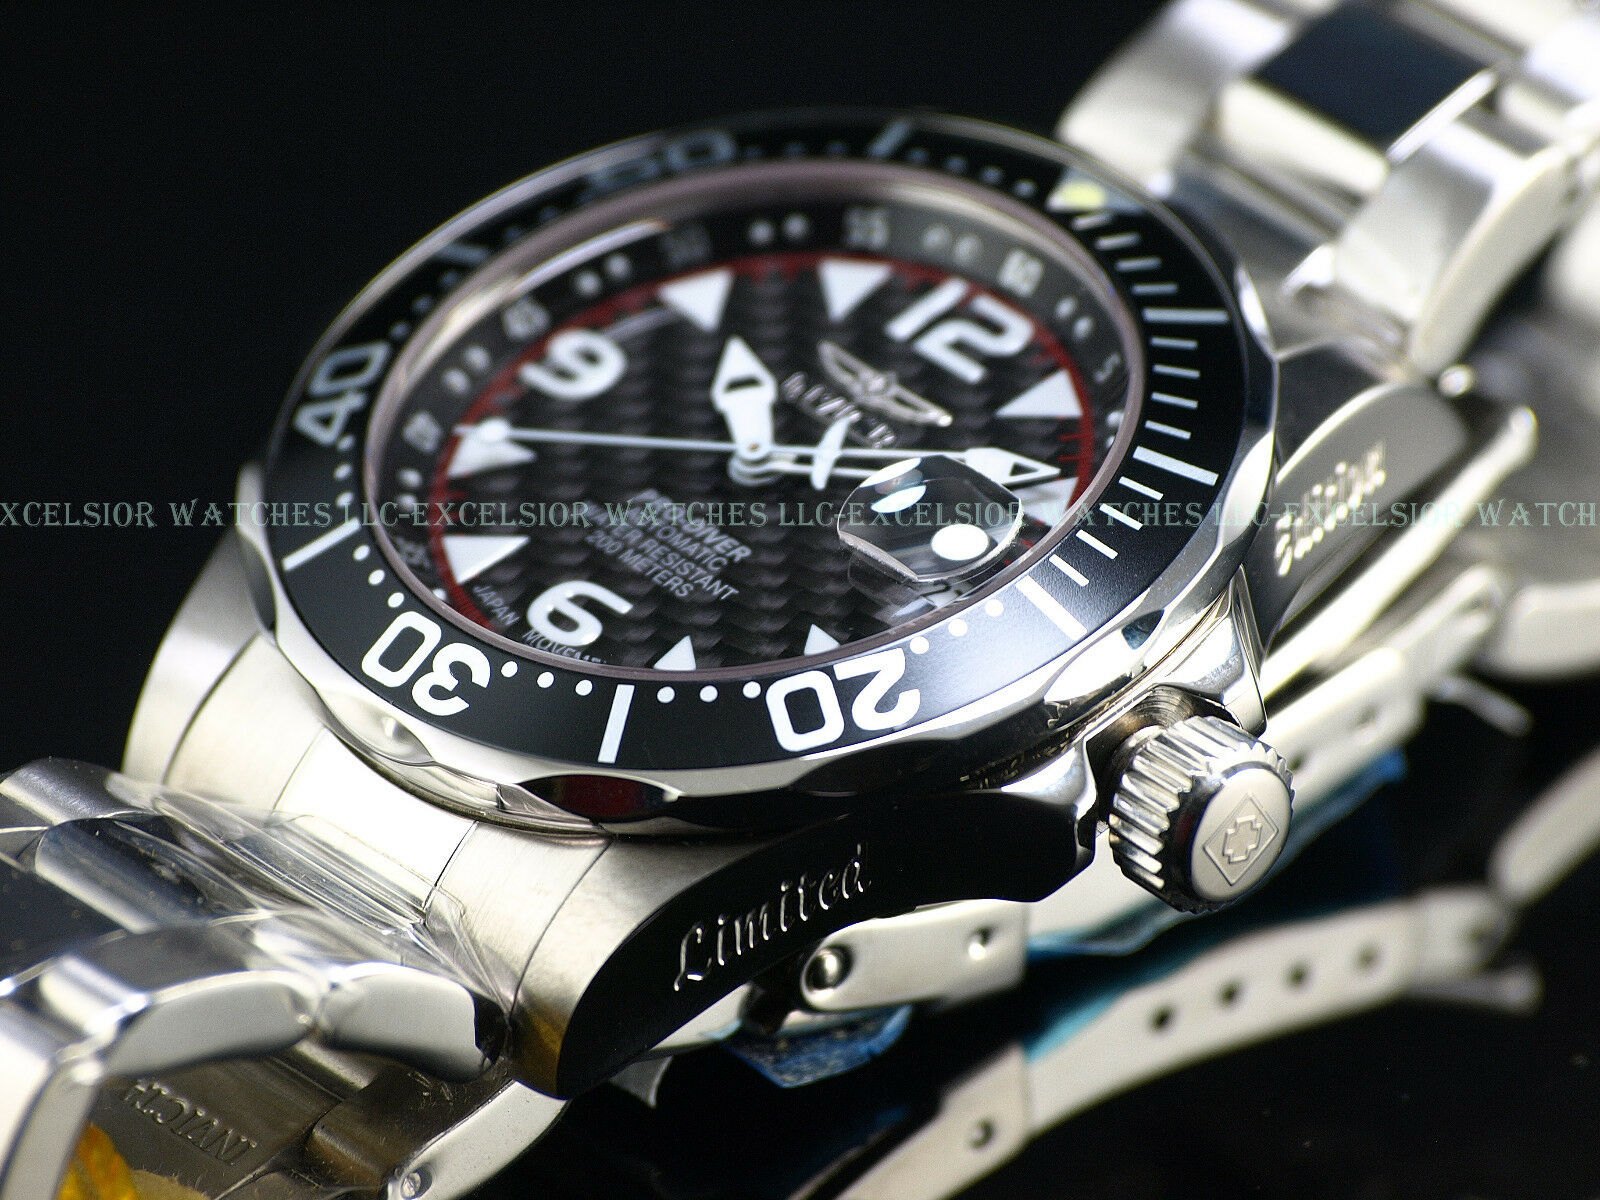 $299.99 - RARE NEW Invicta Lim.Ed. Pro Diver Automatic Sapphire Crystal CF Dial SS Watch